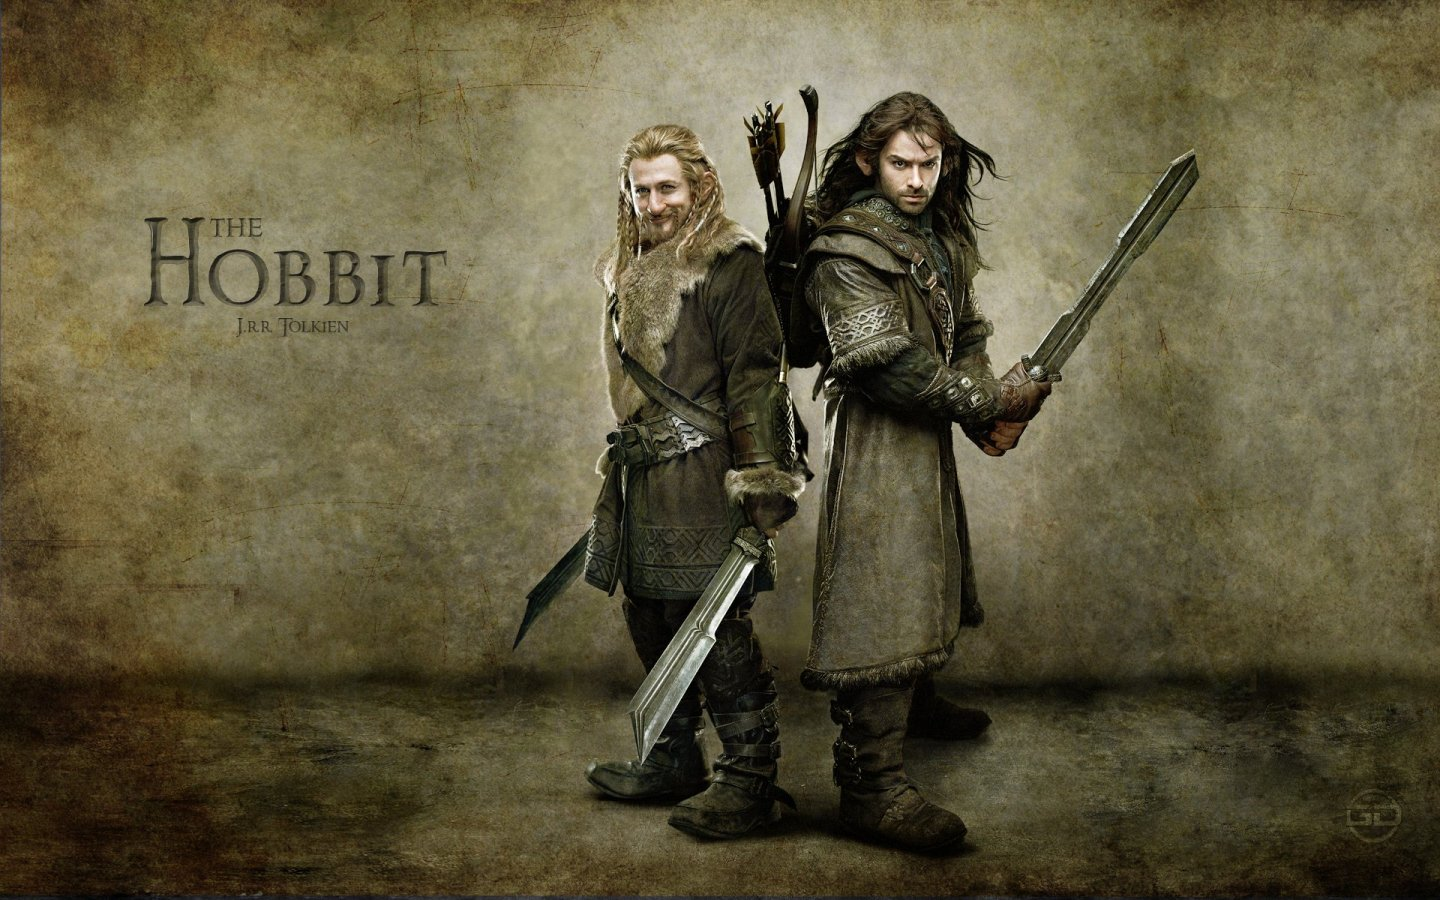 The Hobbit Wallpaper 1440x900 Wallpapers 1440x900 Wallpapers 1440x900